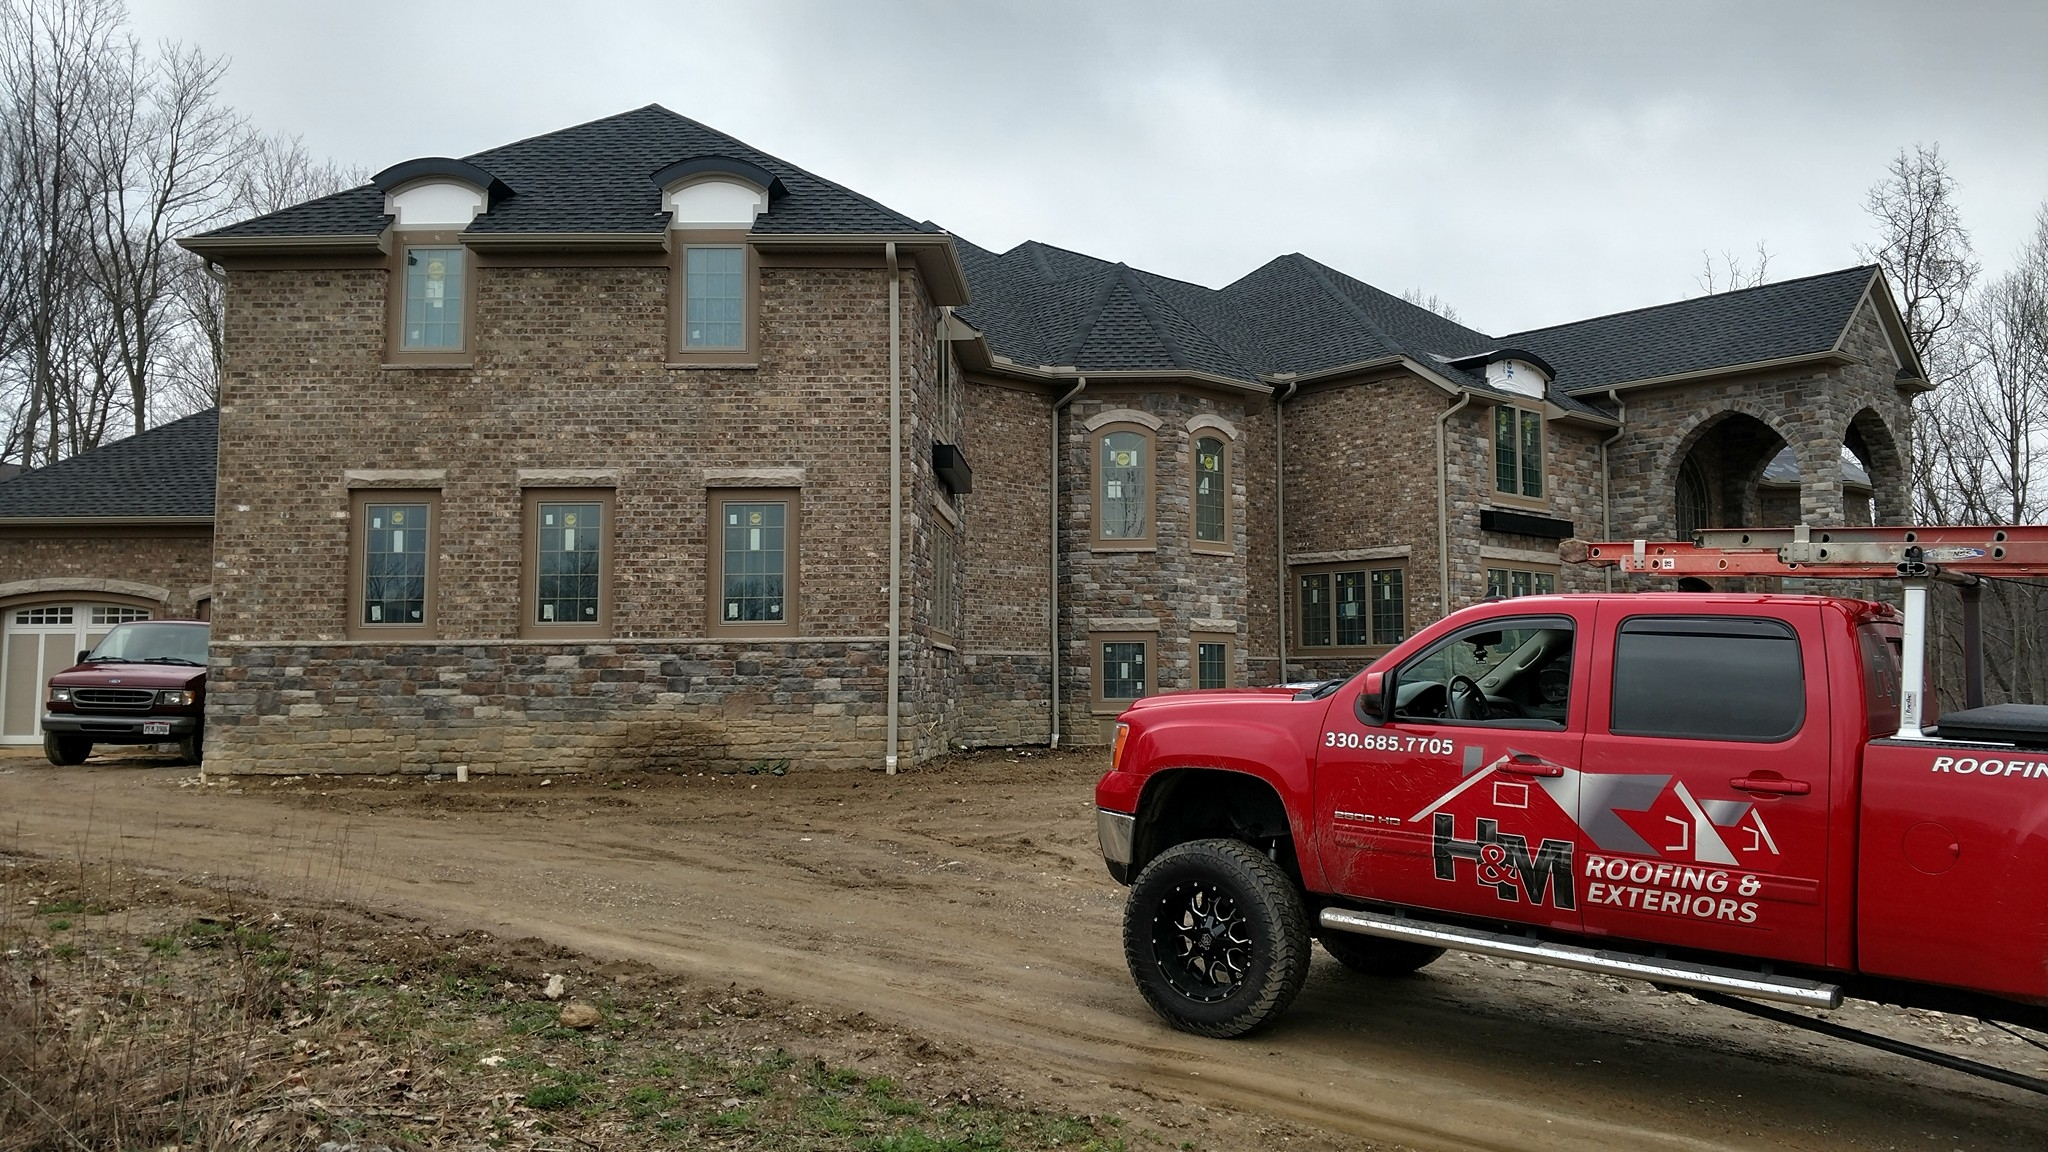 H & M Roofing And Exteriors LLC image 16